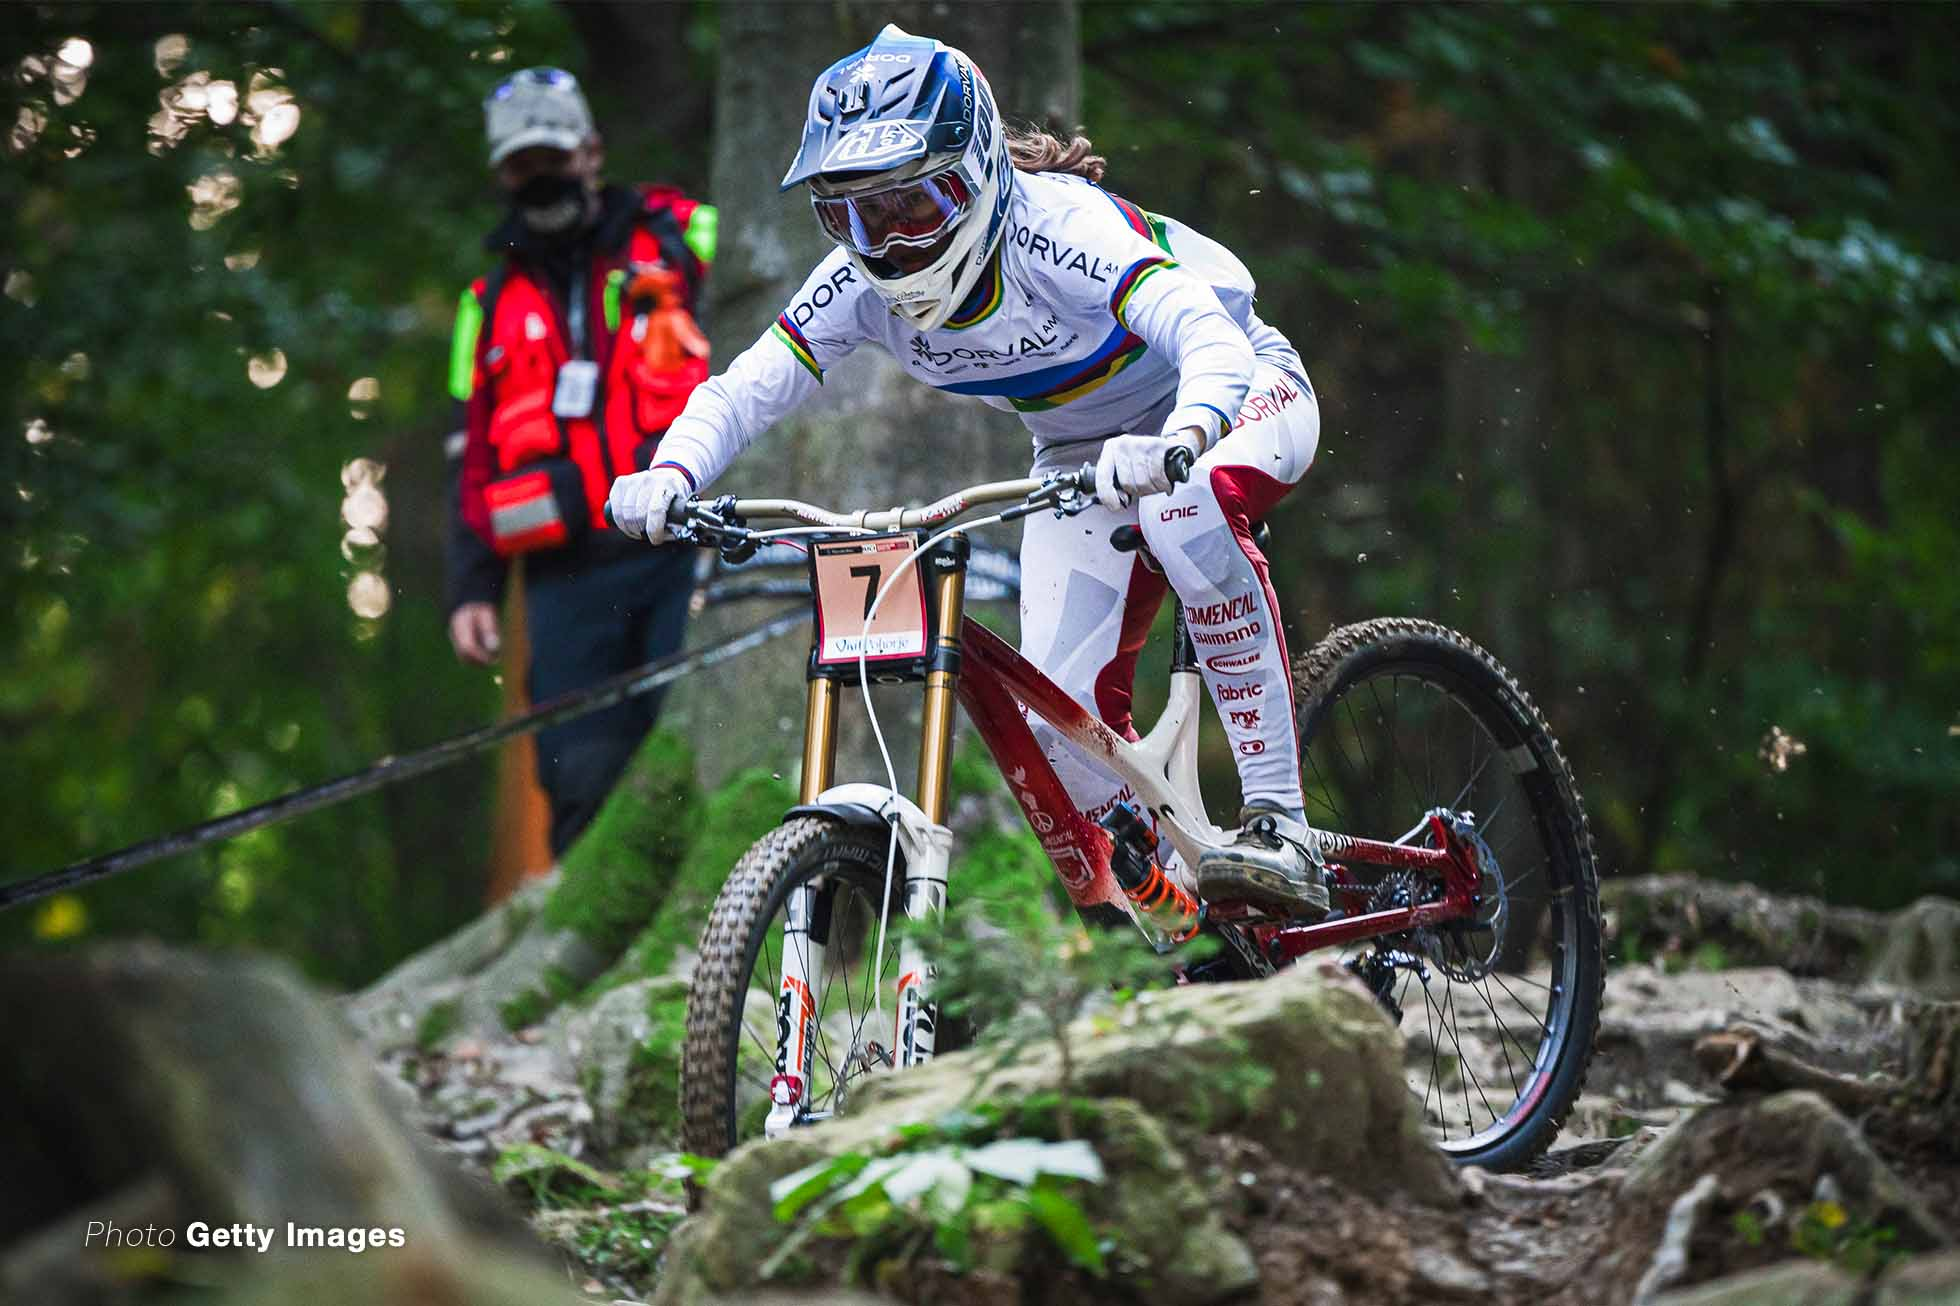 Camille Balanche of Switzerland competes during the UCI BIKE PARK POHORJE, MARIBOR, SLOVENIA - 2020/10/18: Camille Balanche of Switzerland competes during the UCI Mountain Bike Downhill World Cup race at the Bike Park Pohorje. (Photo by Jure Makovec/SOPA Images/LightRocket via Getty Images)